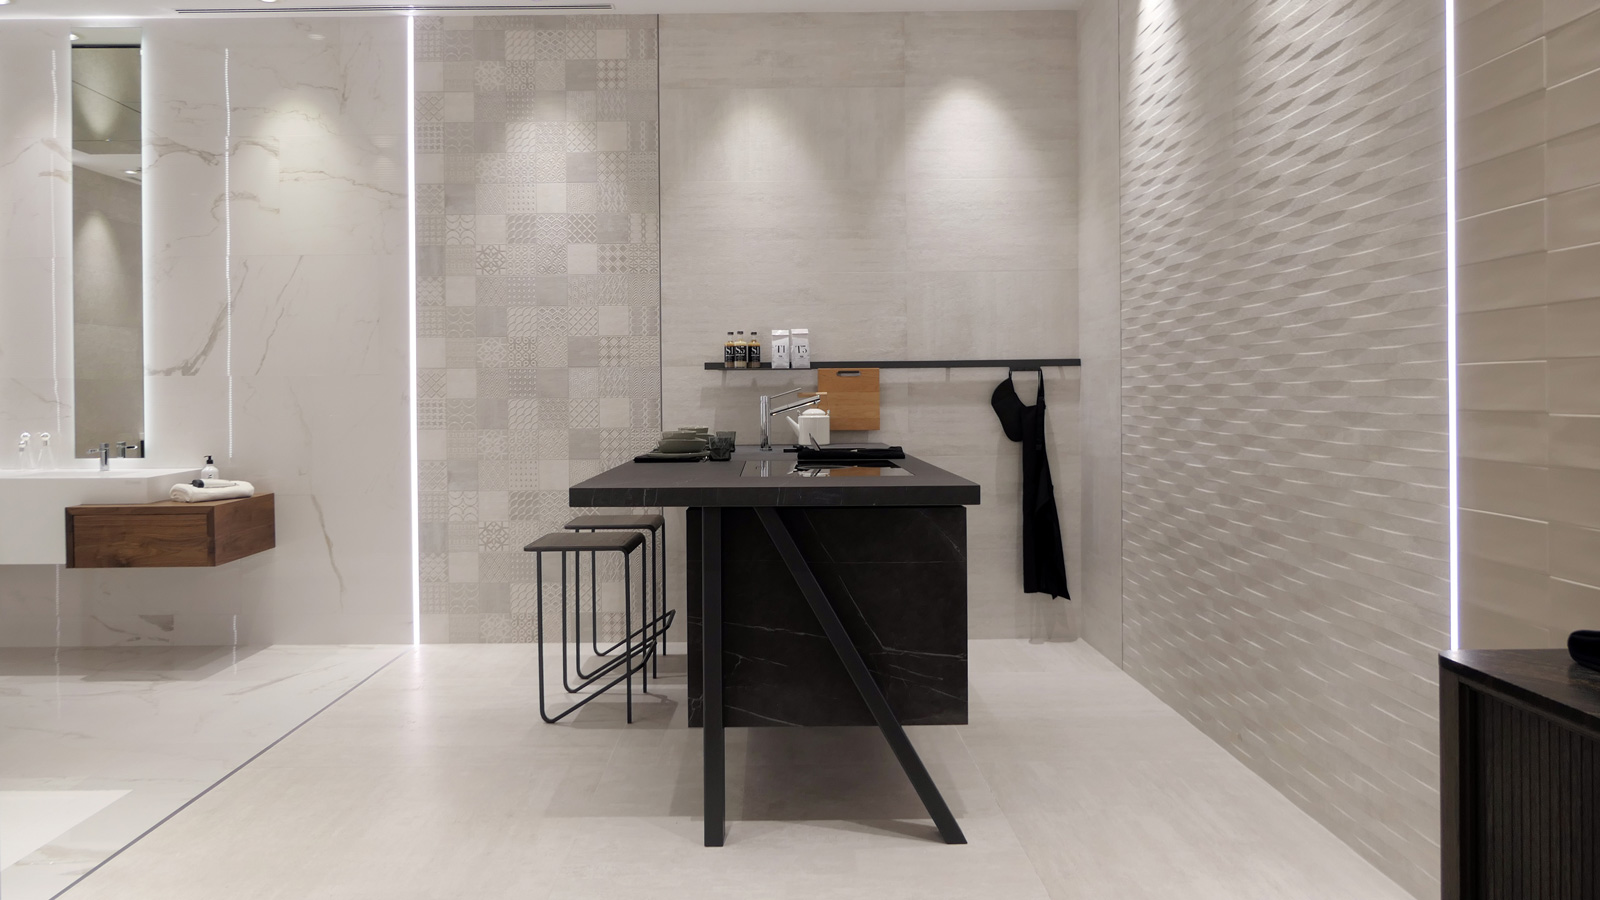 Gamadecor transfers its new bathrooms and kitchens to Cersaie